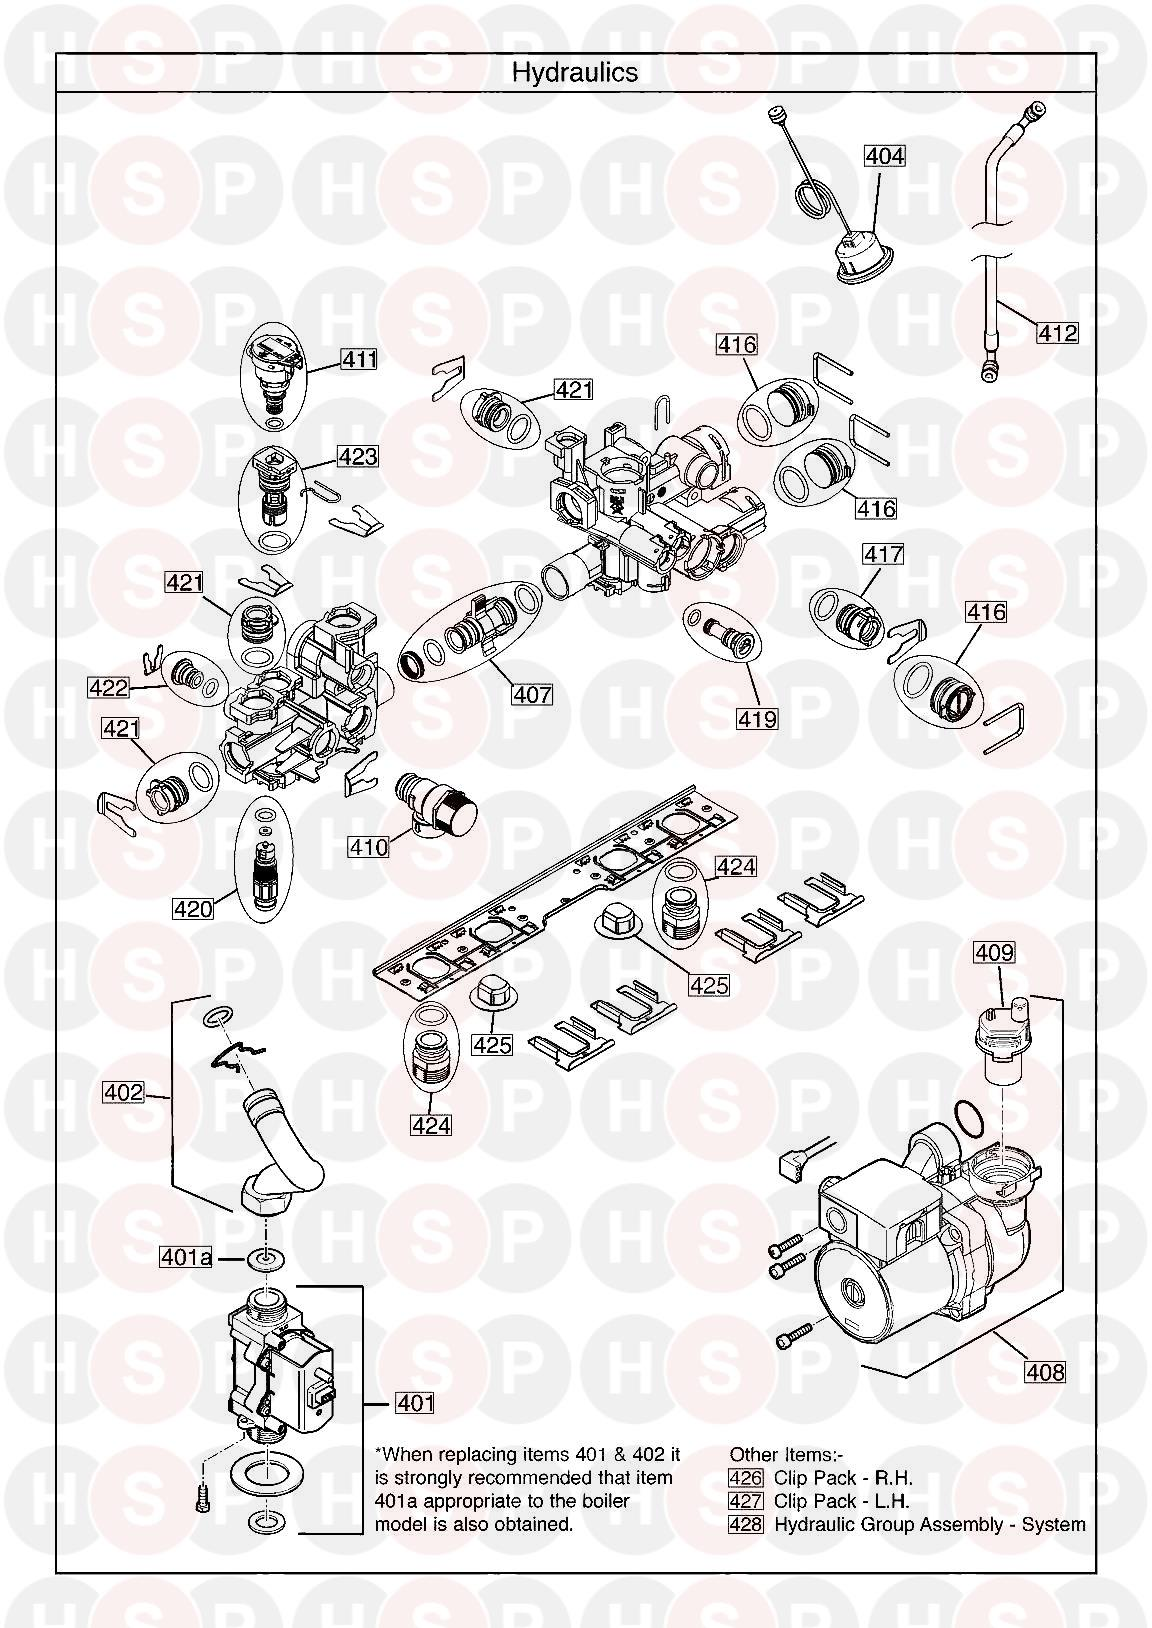 Central heating wiring diagrams readingrat megaflo wiring diagram y plan wiring diagram schematic cheapraybanclubmaster Gallery